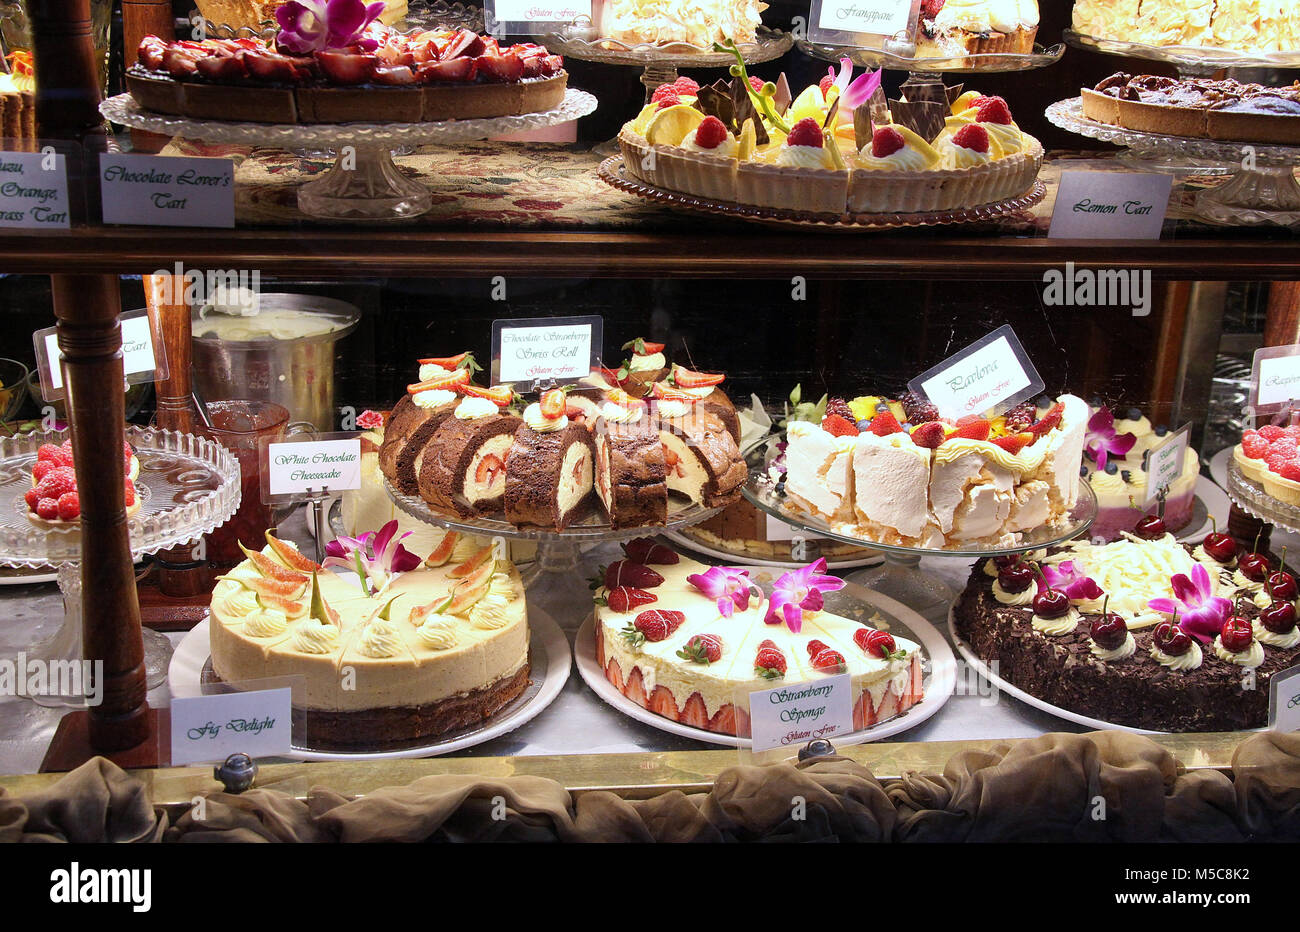 Cakes displayed in the window of Hopetoun Tea Room in Melbourne - Stock Image